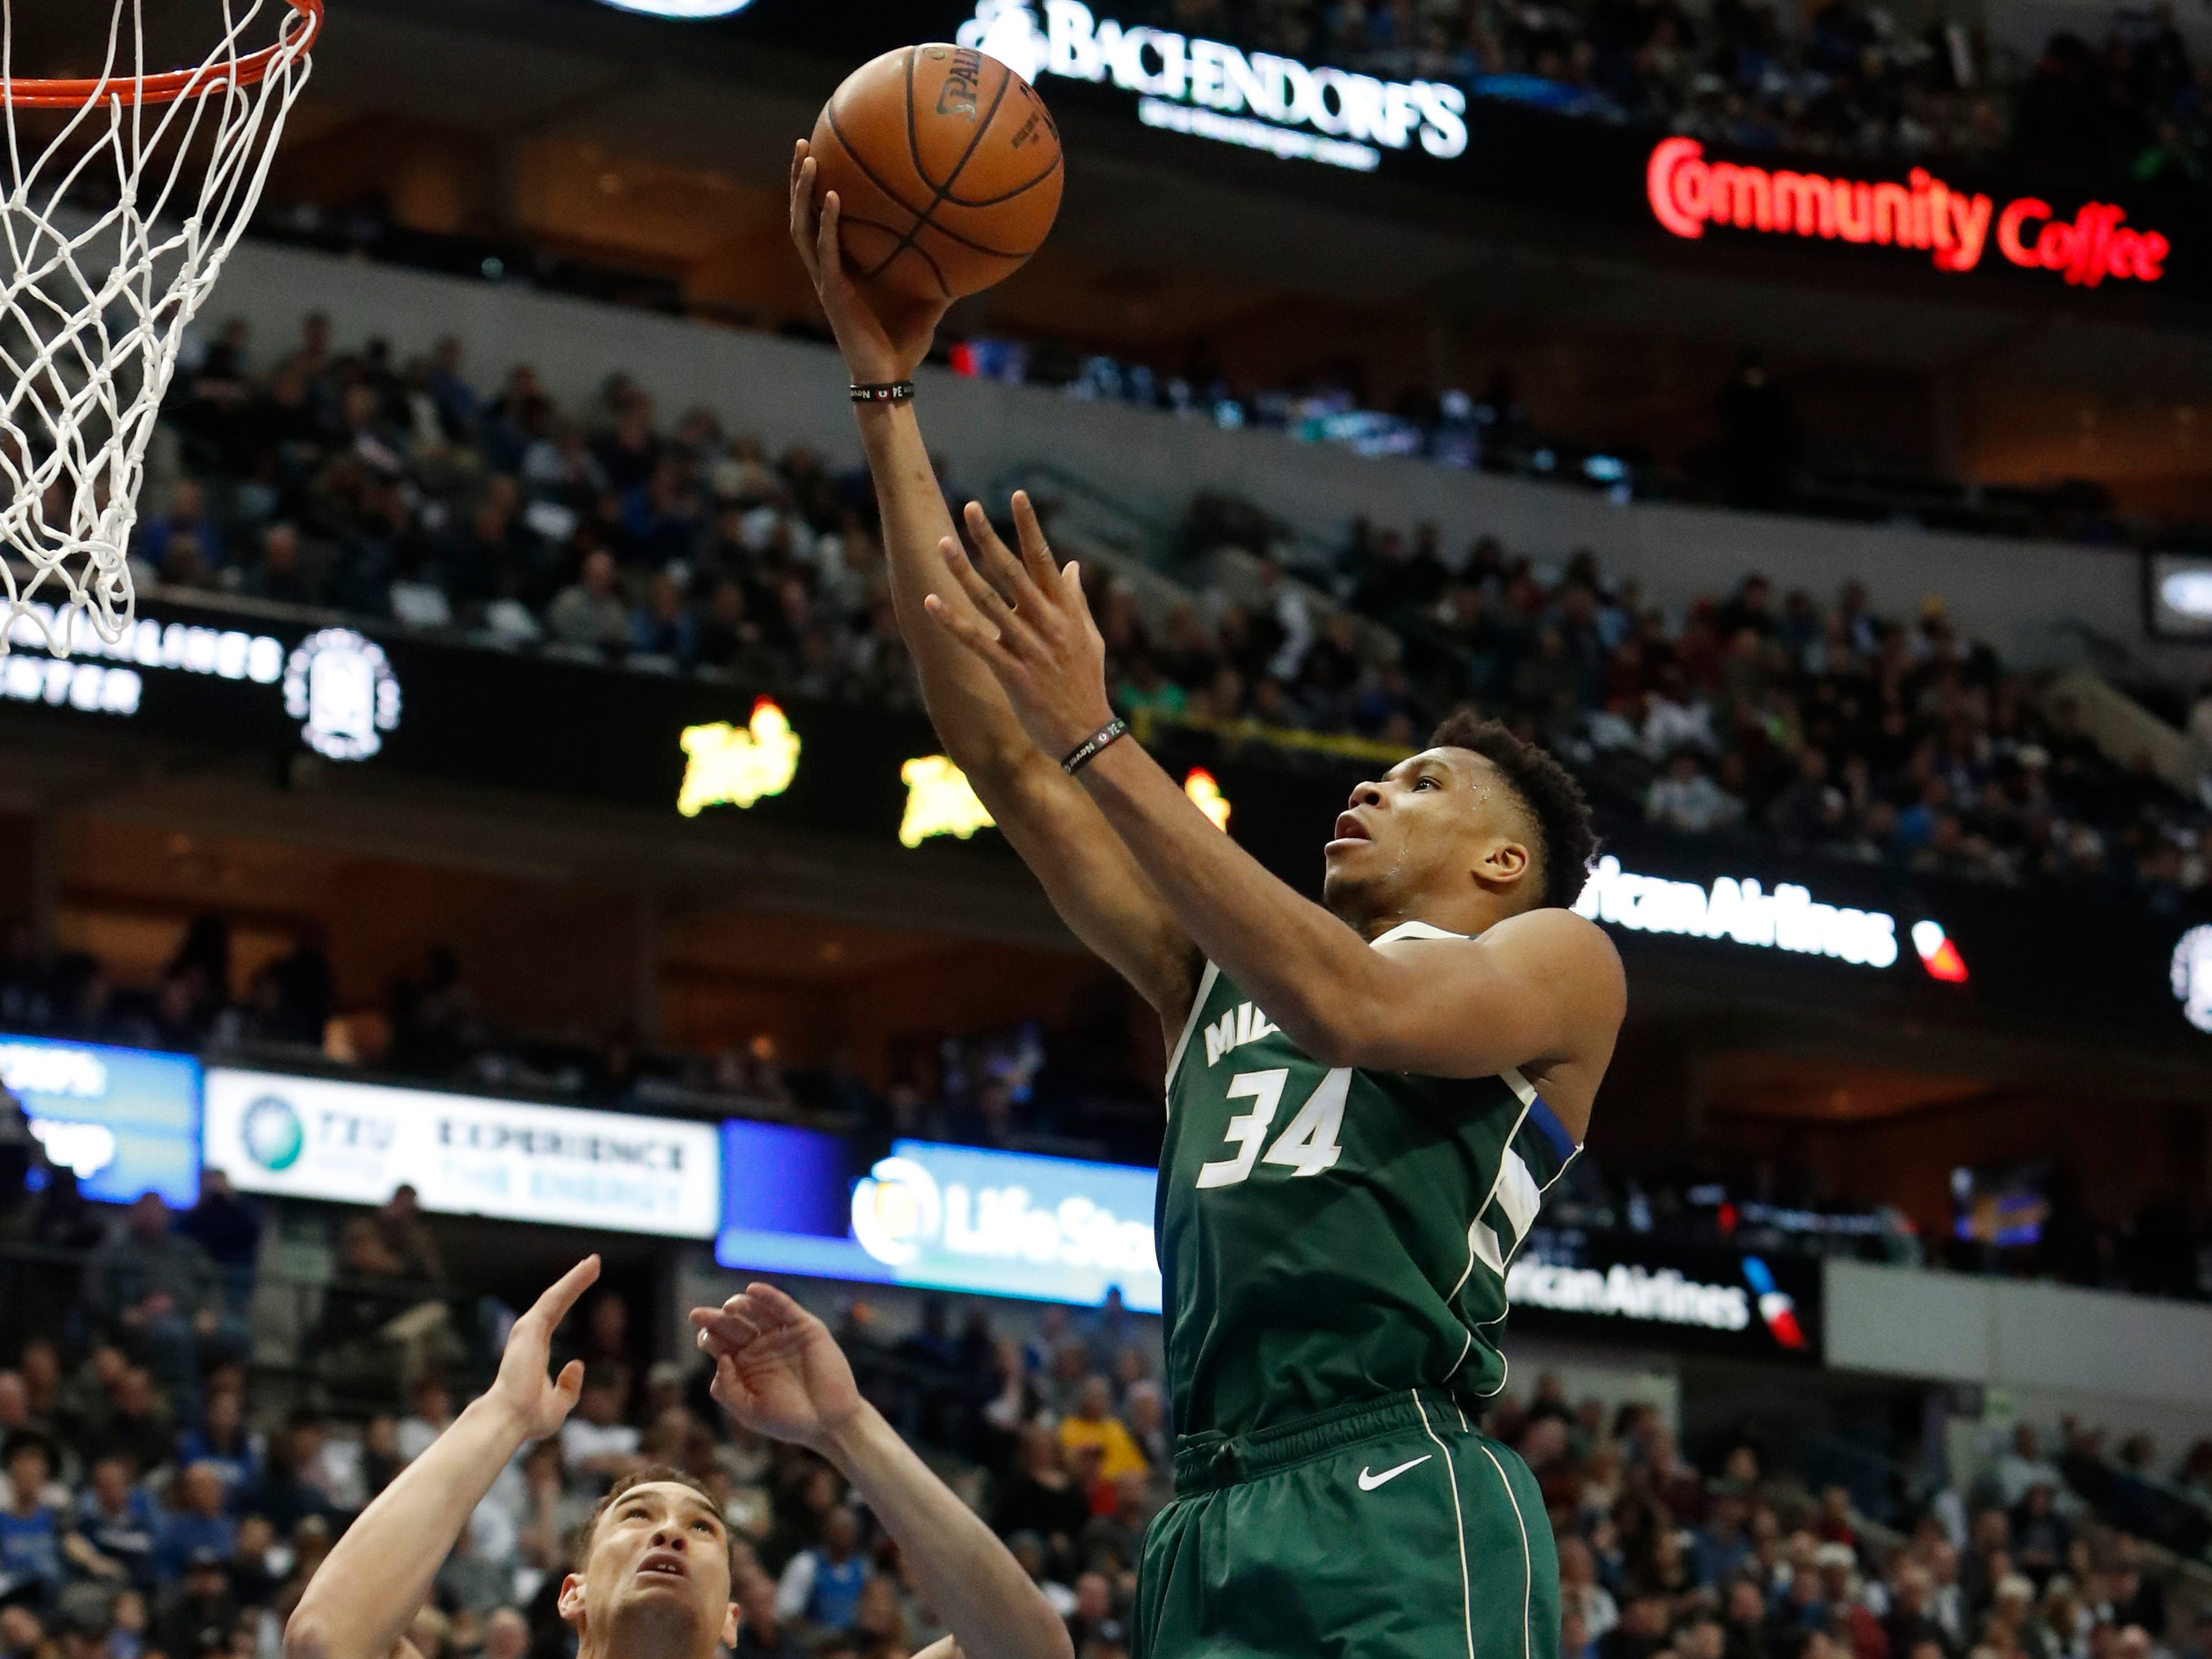 Giannis Antetokounmpo and the Bucks had their way against the Mavericks in the paint on Friday night. The Greek Freak finished with 29 points, most coming on drives to the basket, and 17 rebounds while Milwaukee outscored Dallas, 80-26, in the paint.